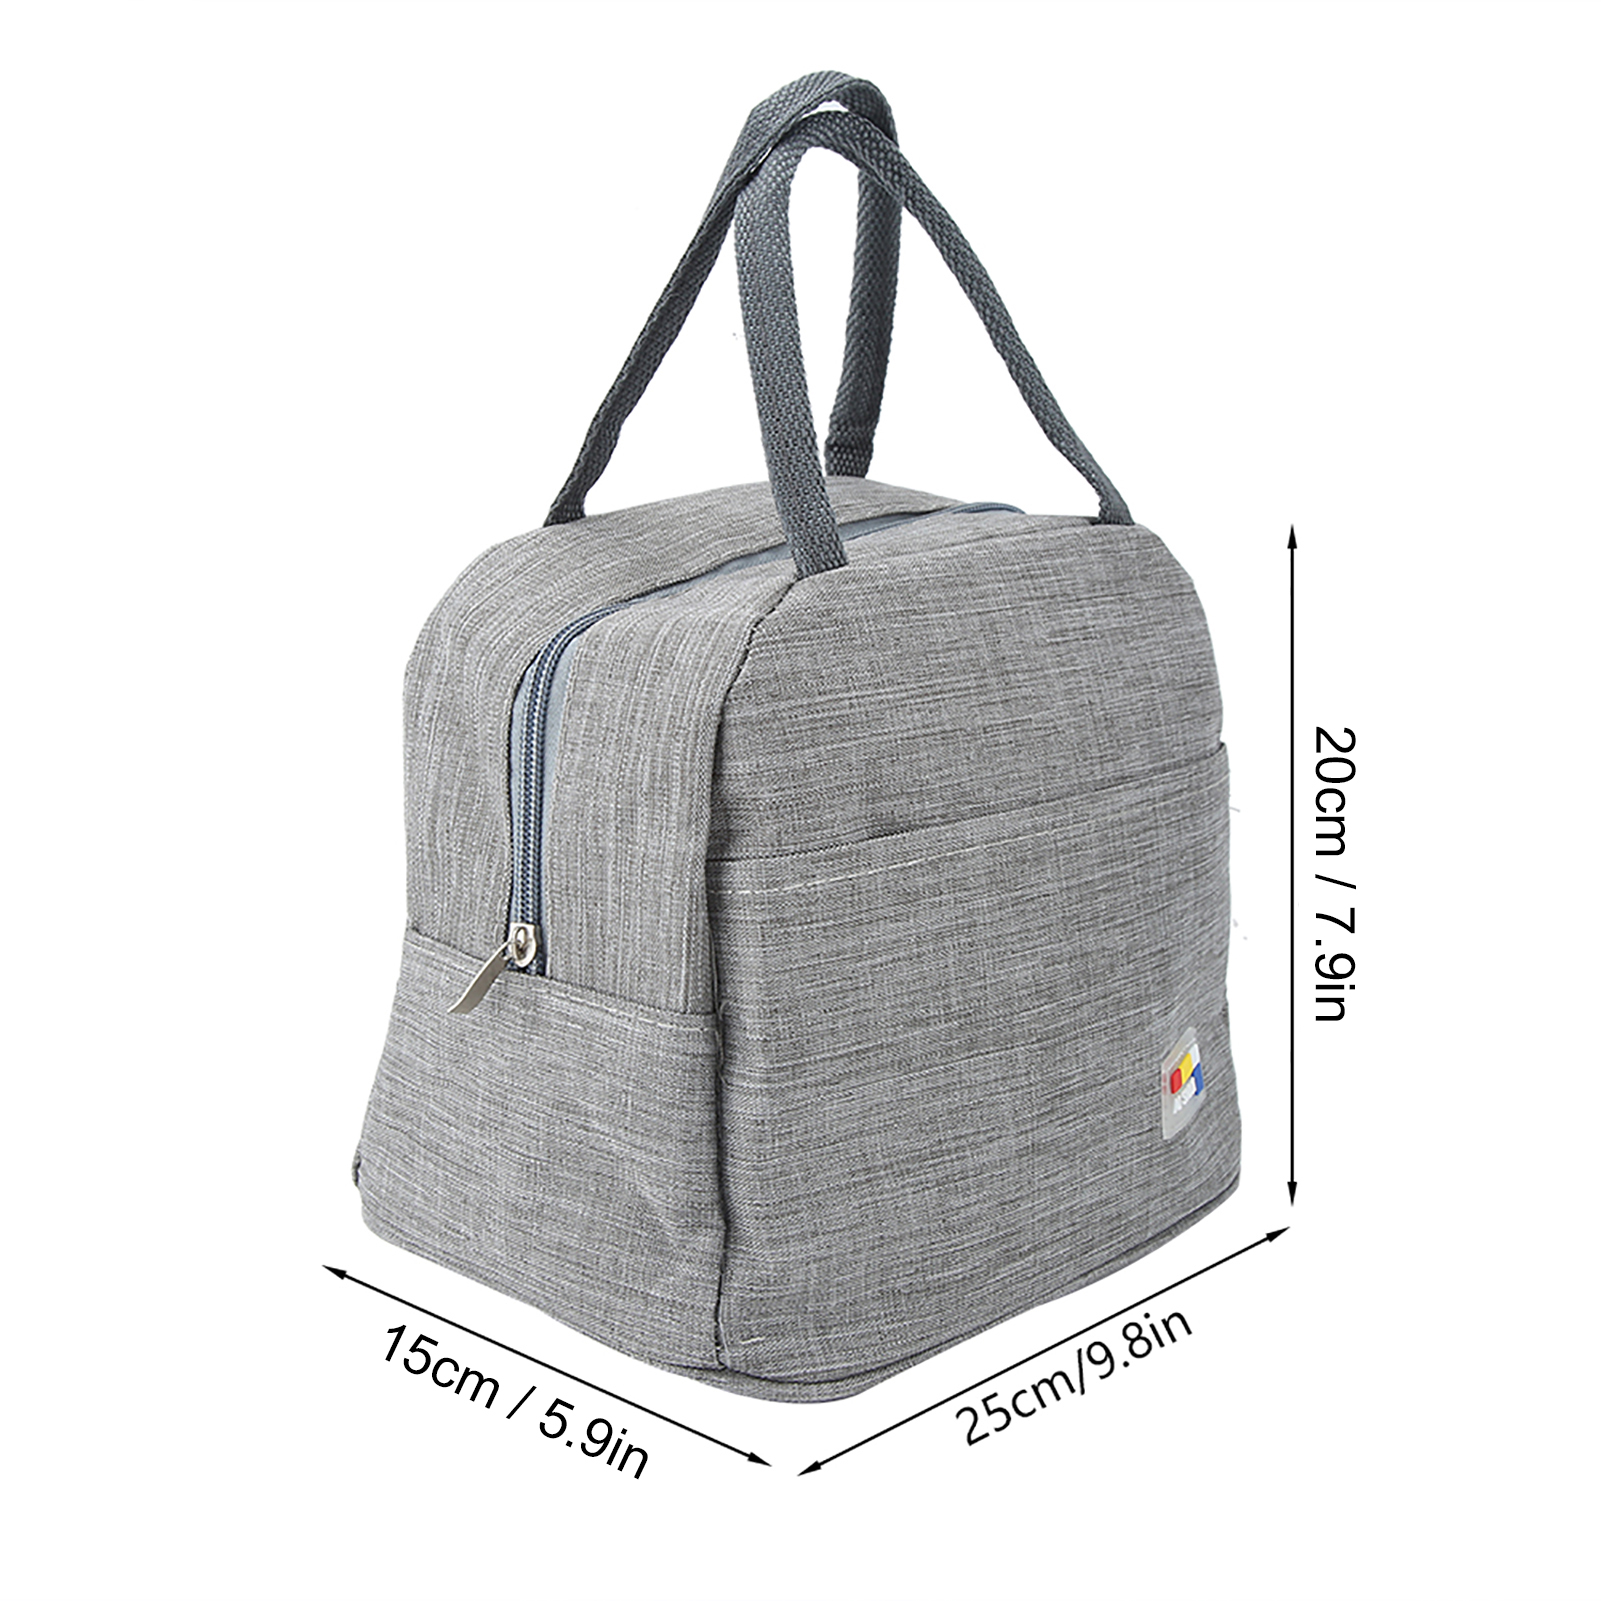 Portable-Lunch-Bag-Insulated-Thermal-Bags-Outdoor-Picnic-Travel-Food-Box-Bag thumbnail 34